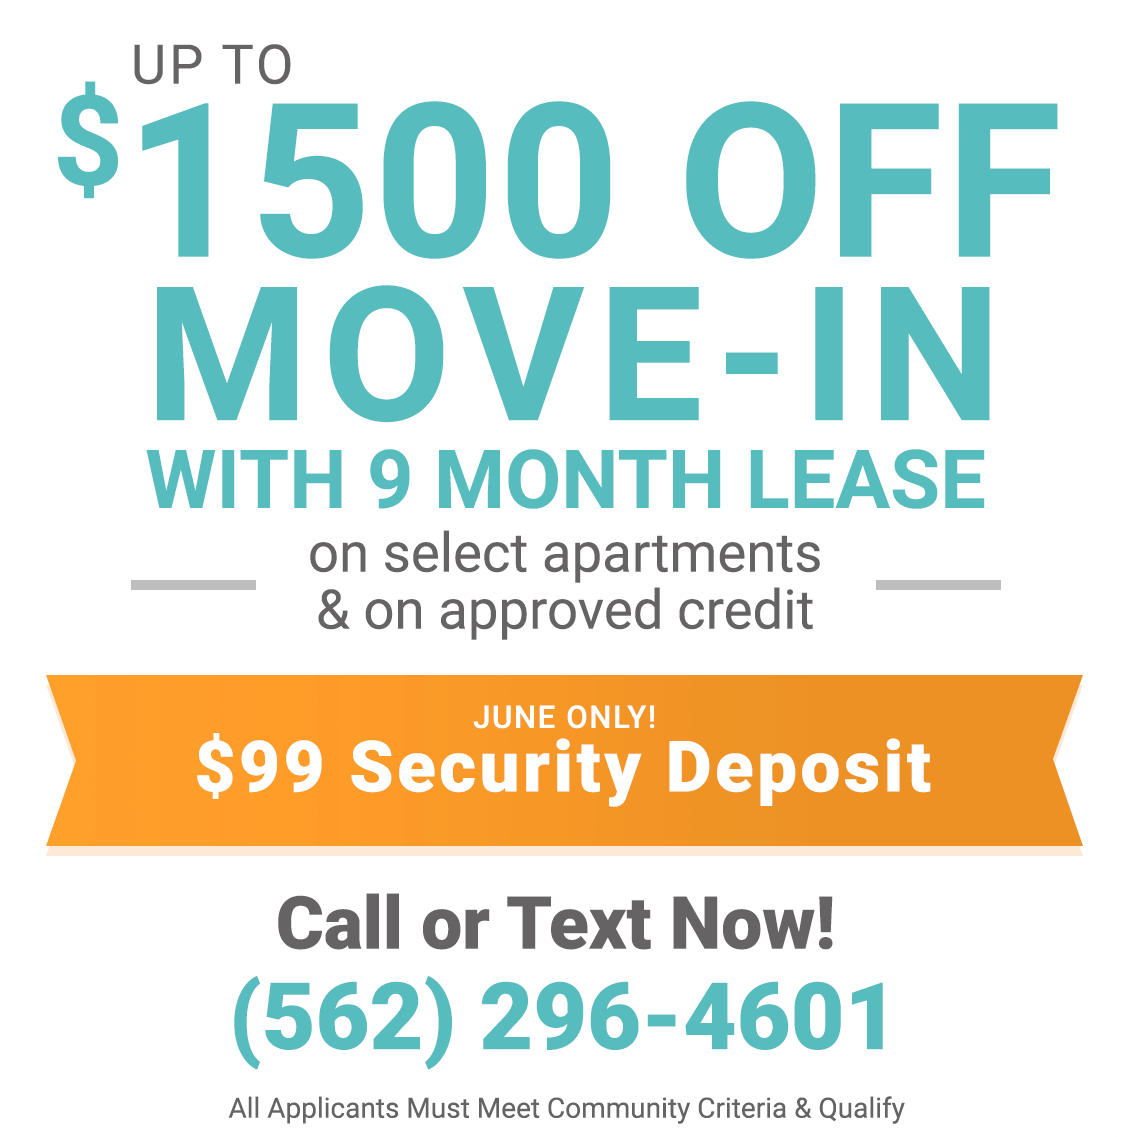 Up to $1,500 off move-in with 9 month lease